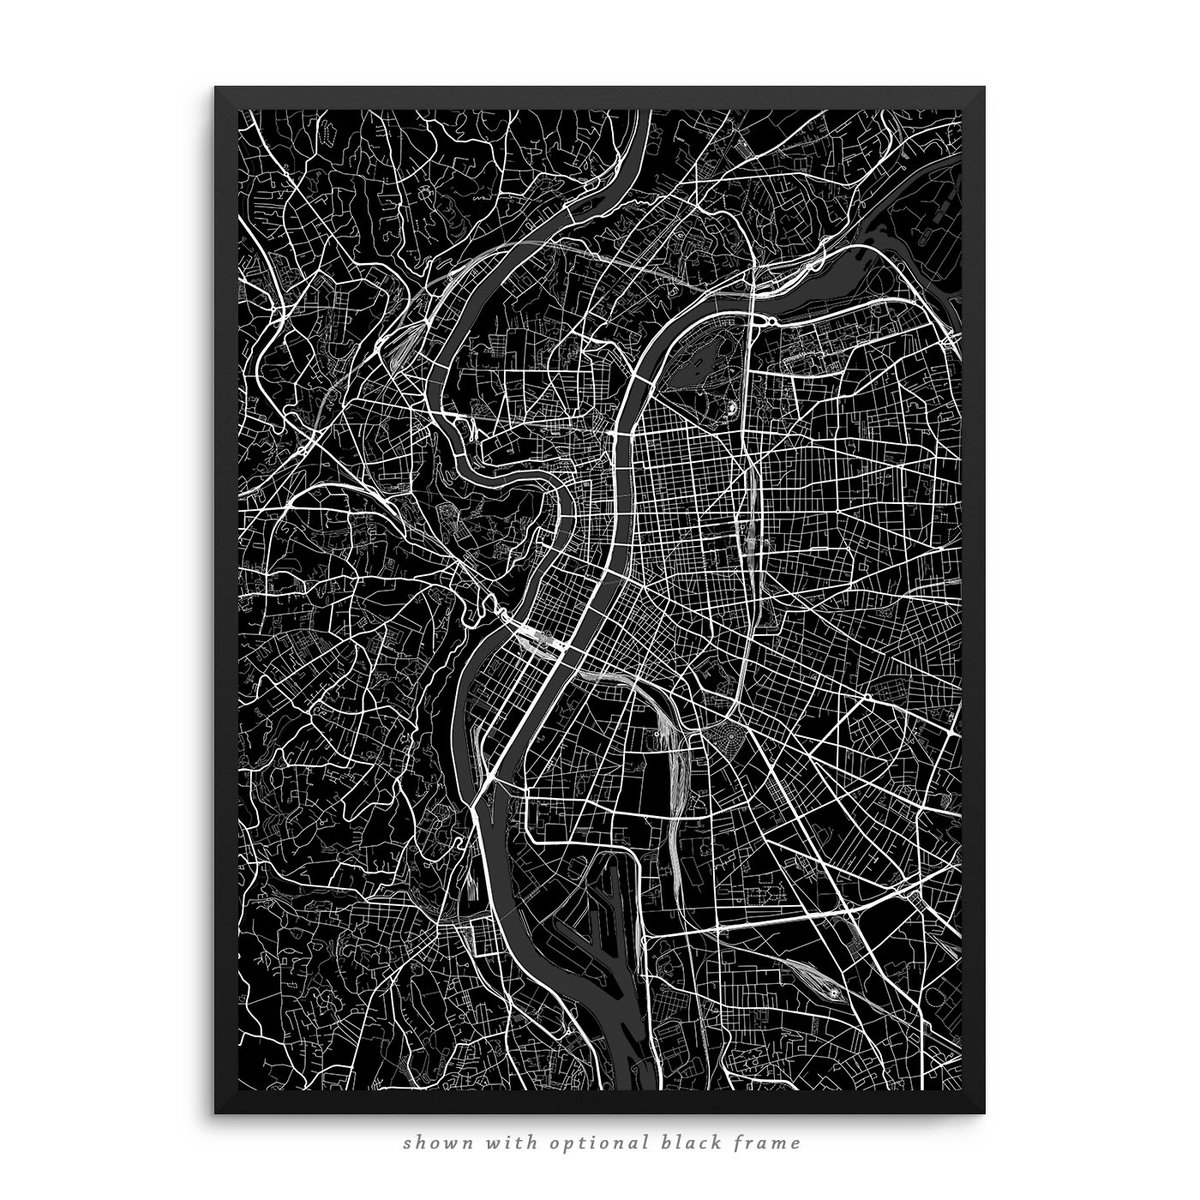 #France isn&#39;t just #Paris - Here we have #Lyon #Nice #Nantes and #Marseille - #HomeDecor and #Travel #Memories @  https://www. etsy.com/shop/JurqStudi o?search_query=france &nbsp; … <br>http://pic.twitter.com/89hGxp3DxE